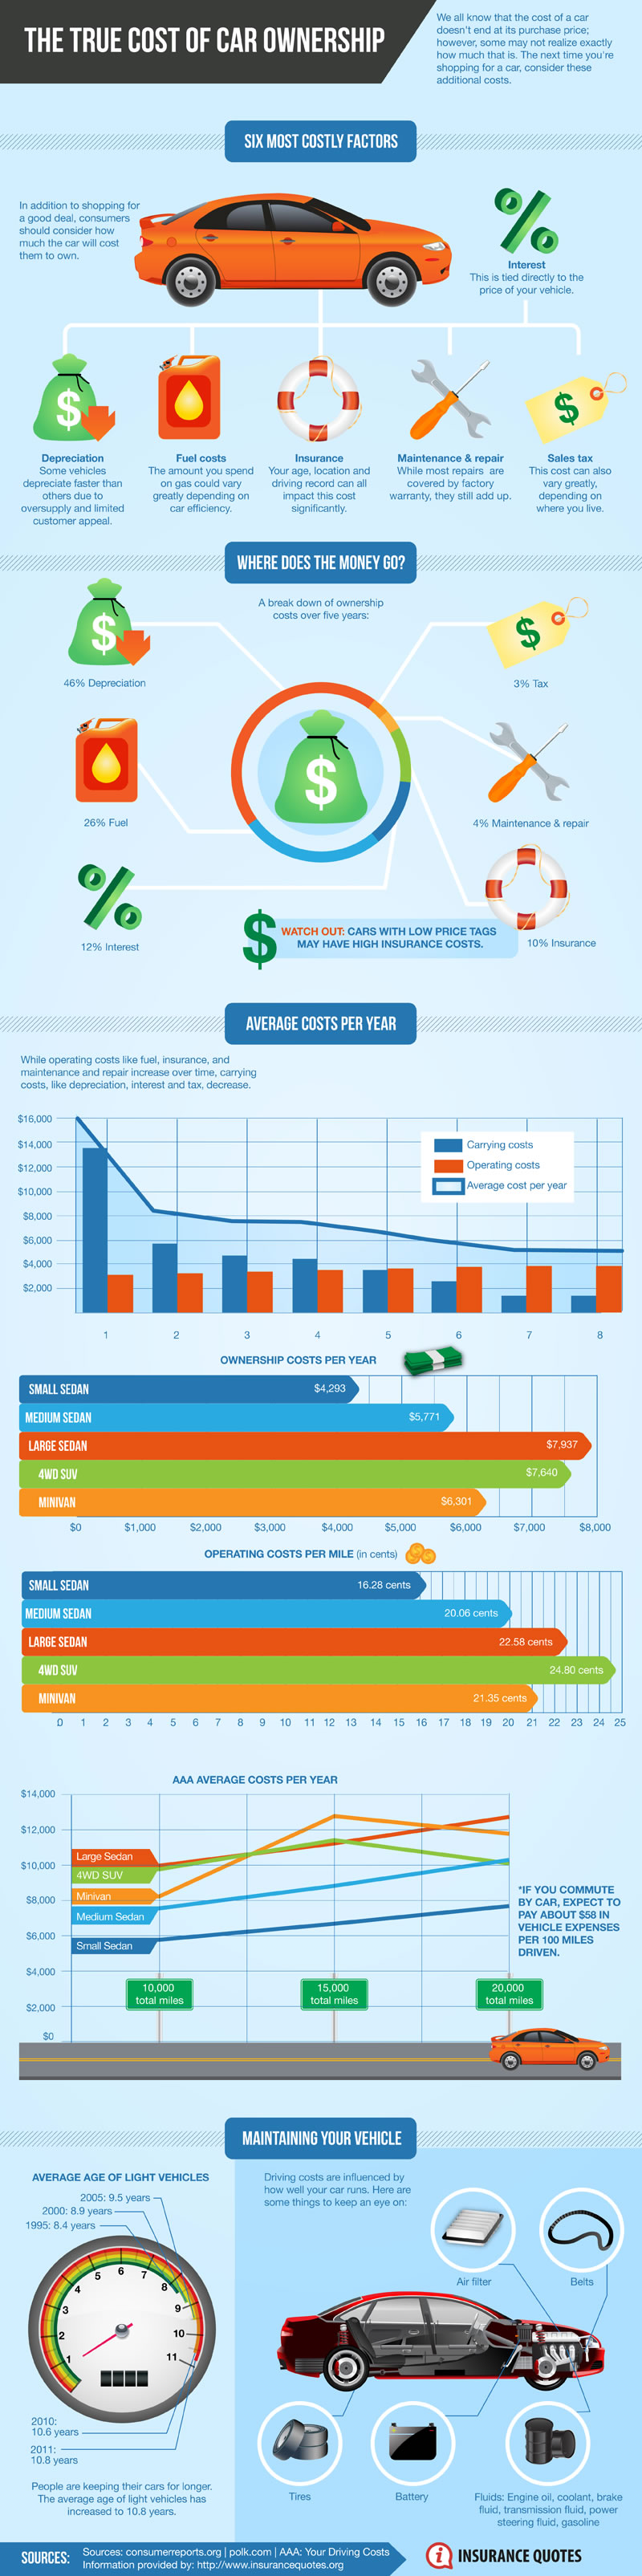 car ownership costs infographic